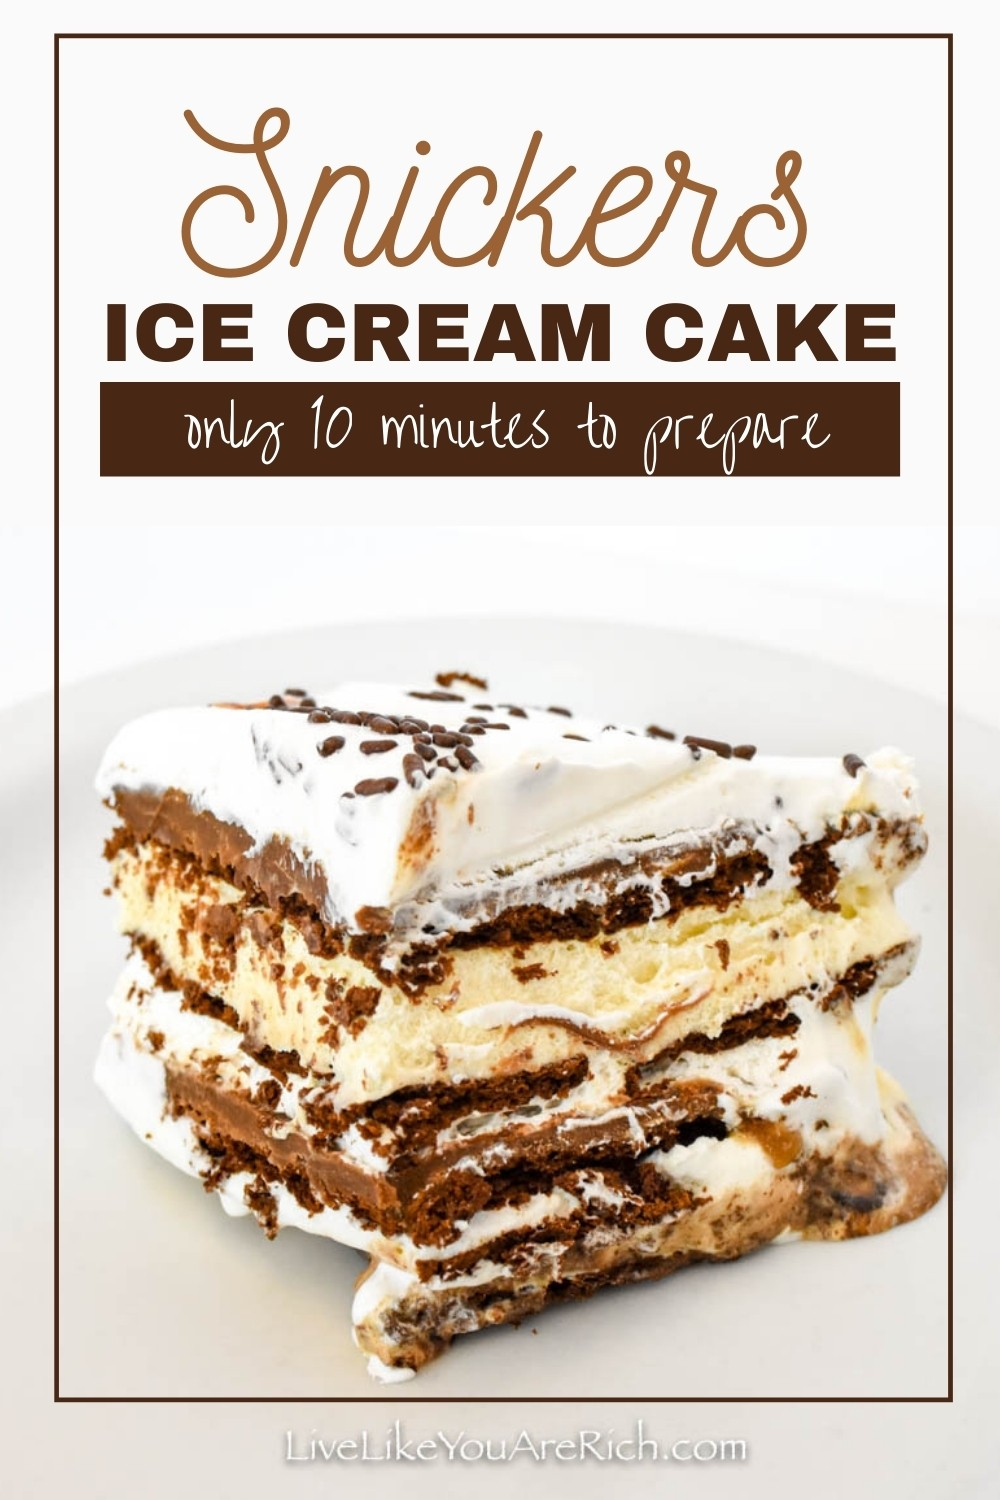 A delicious Ice Cream cake that tastes just like a Snickers Bar! Easy to assemble and well loved. This Snickers Ice Cream Cake was super easy to put together, it took about 10 minutes is all.